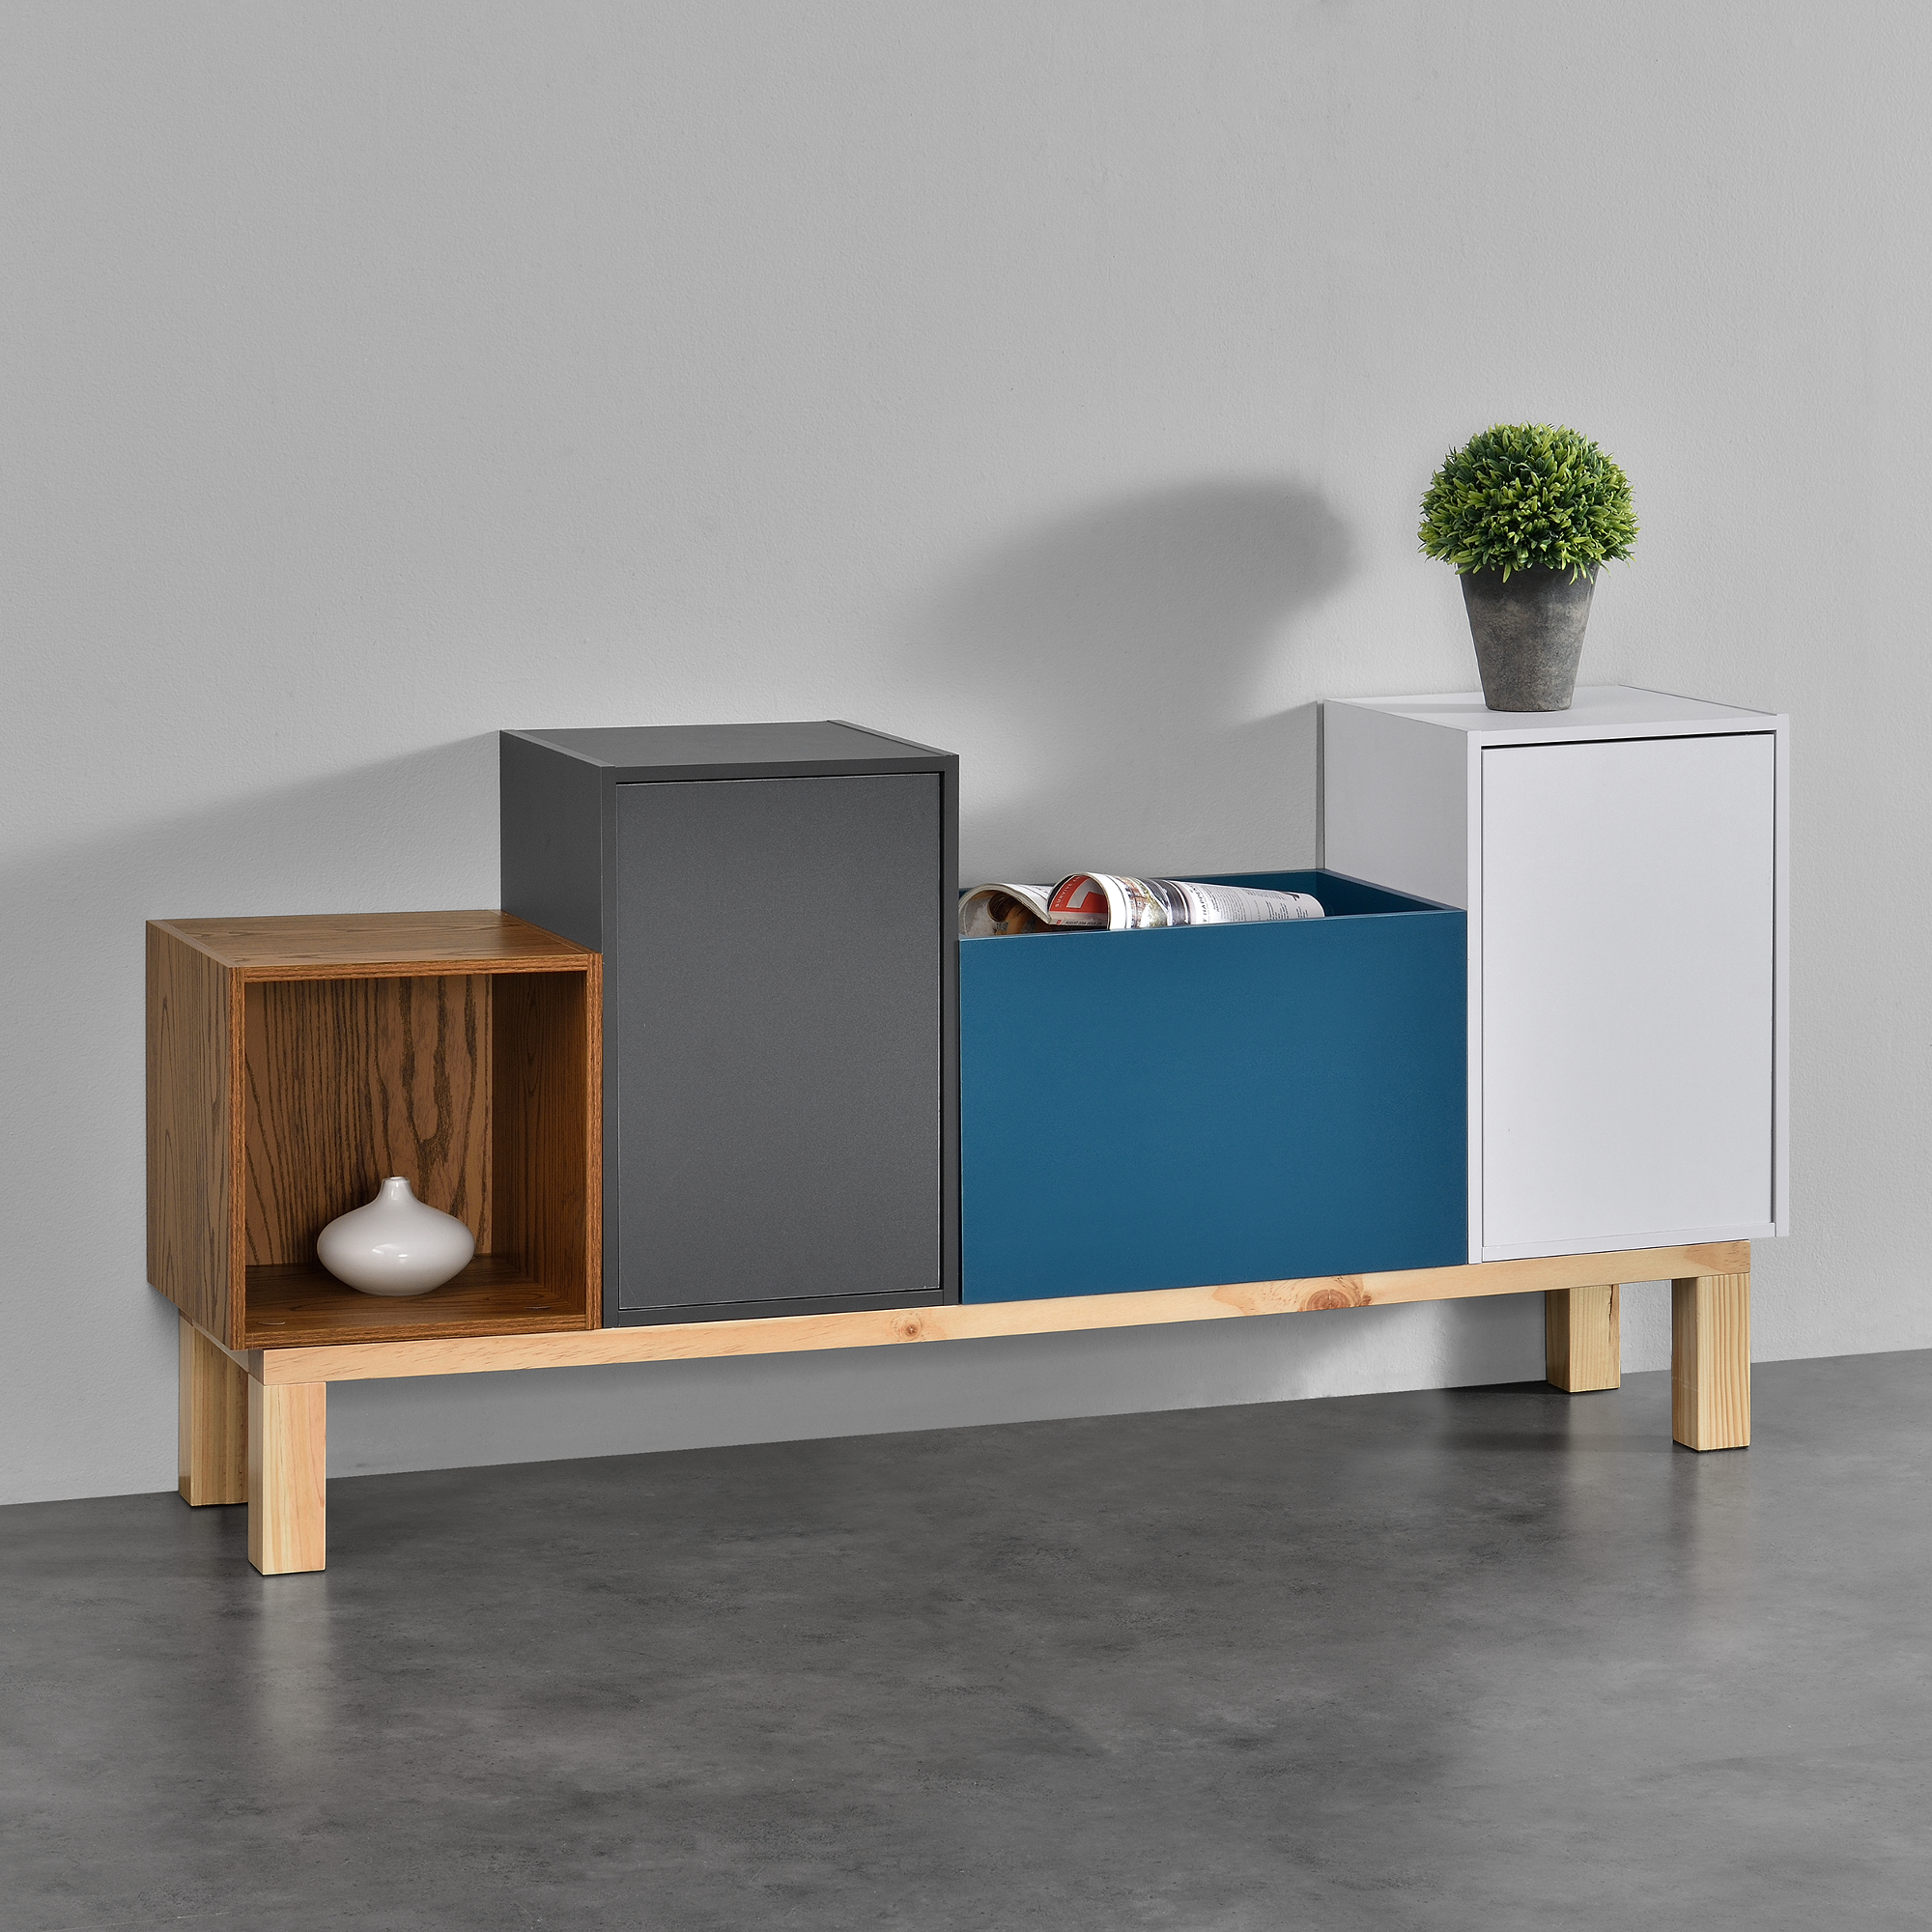 regalgestell 130x30x18cm gestell kommode sideboard regalf e standfu ebay. Black Bedroom Furniture Sets. Home Design Ideas